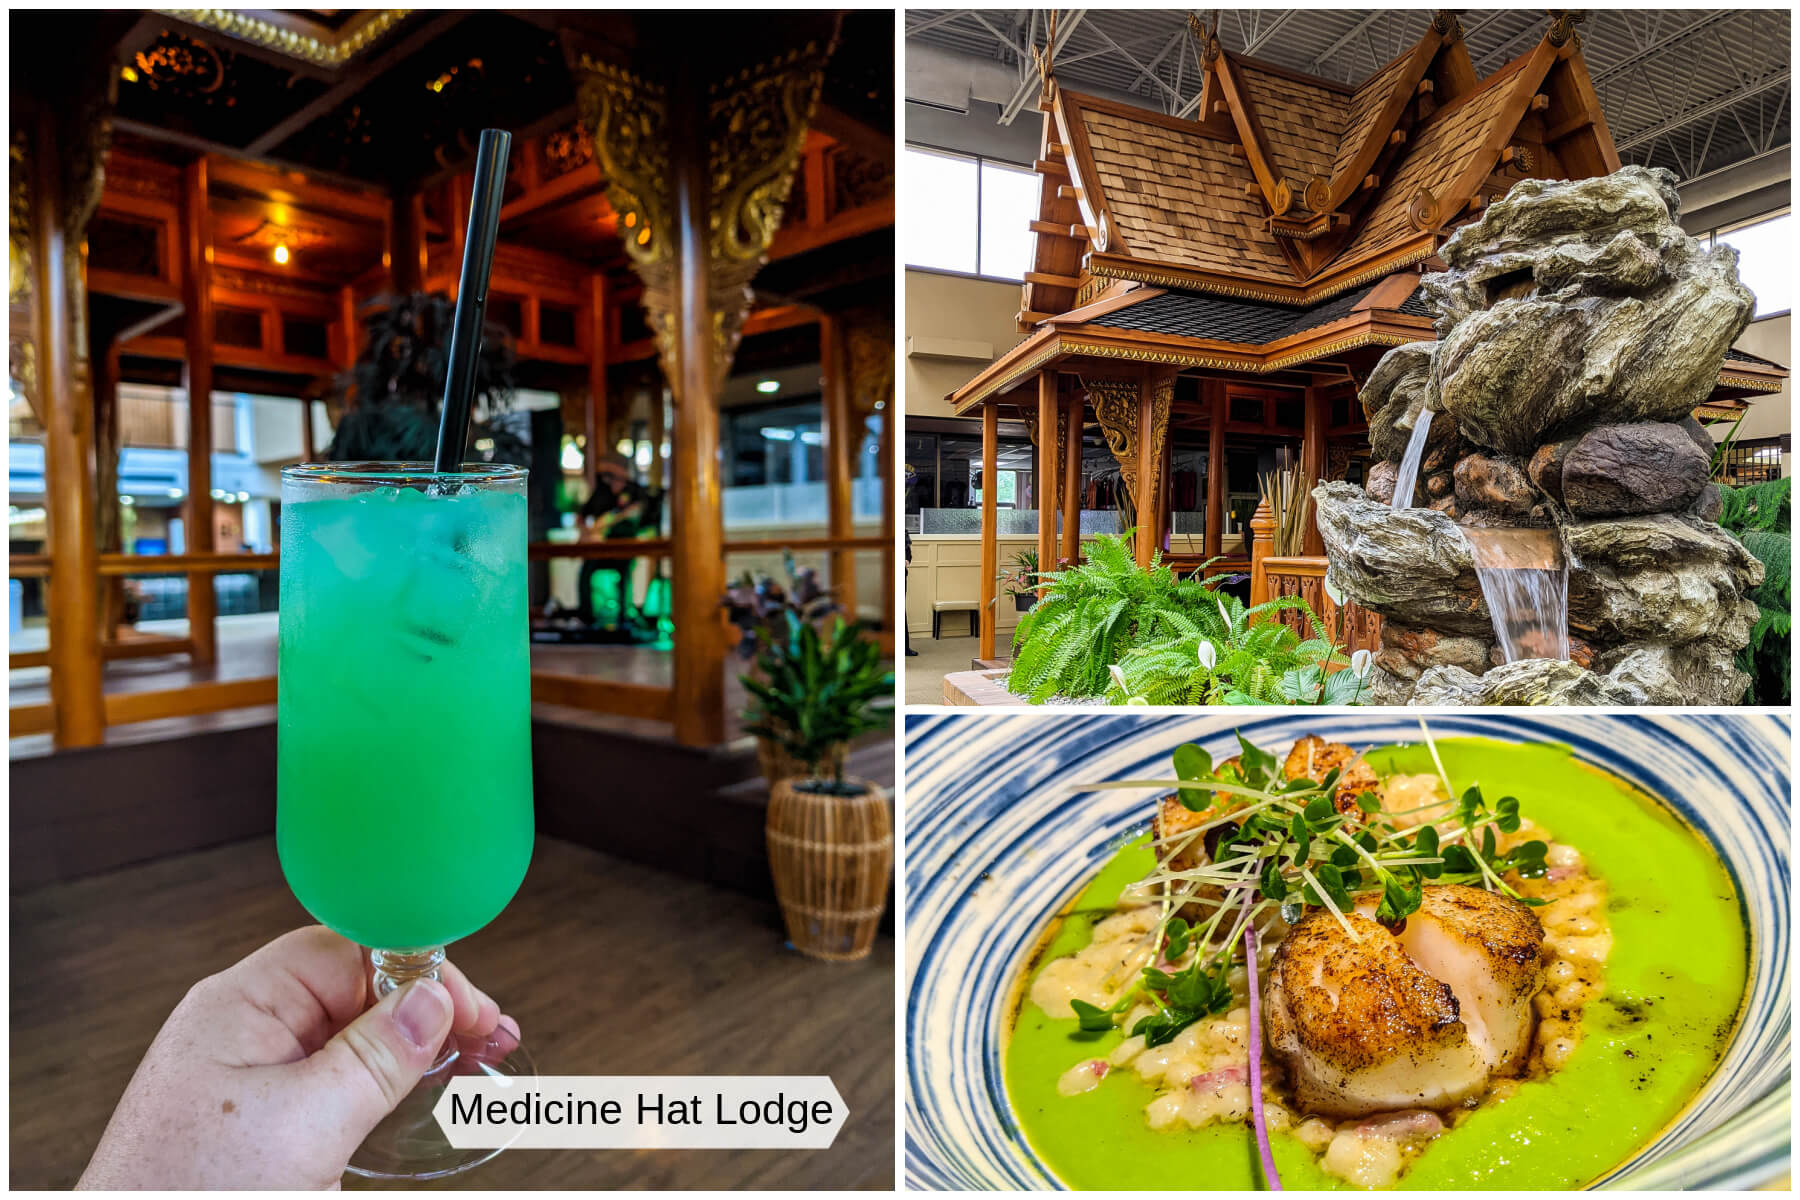 A collection of image showing a cocktail, food, and Thai Pagoda indoors at Medicine Hat Lodge.